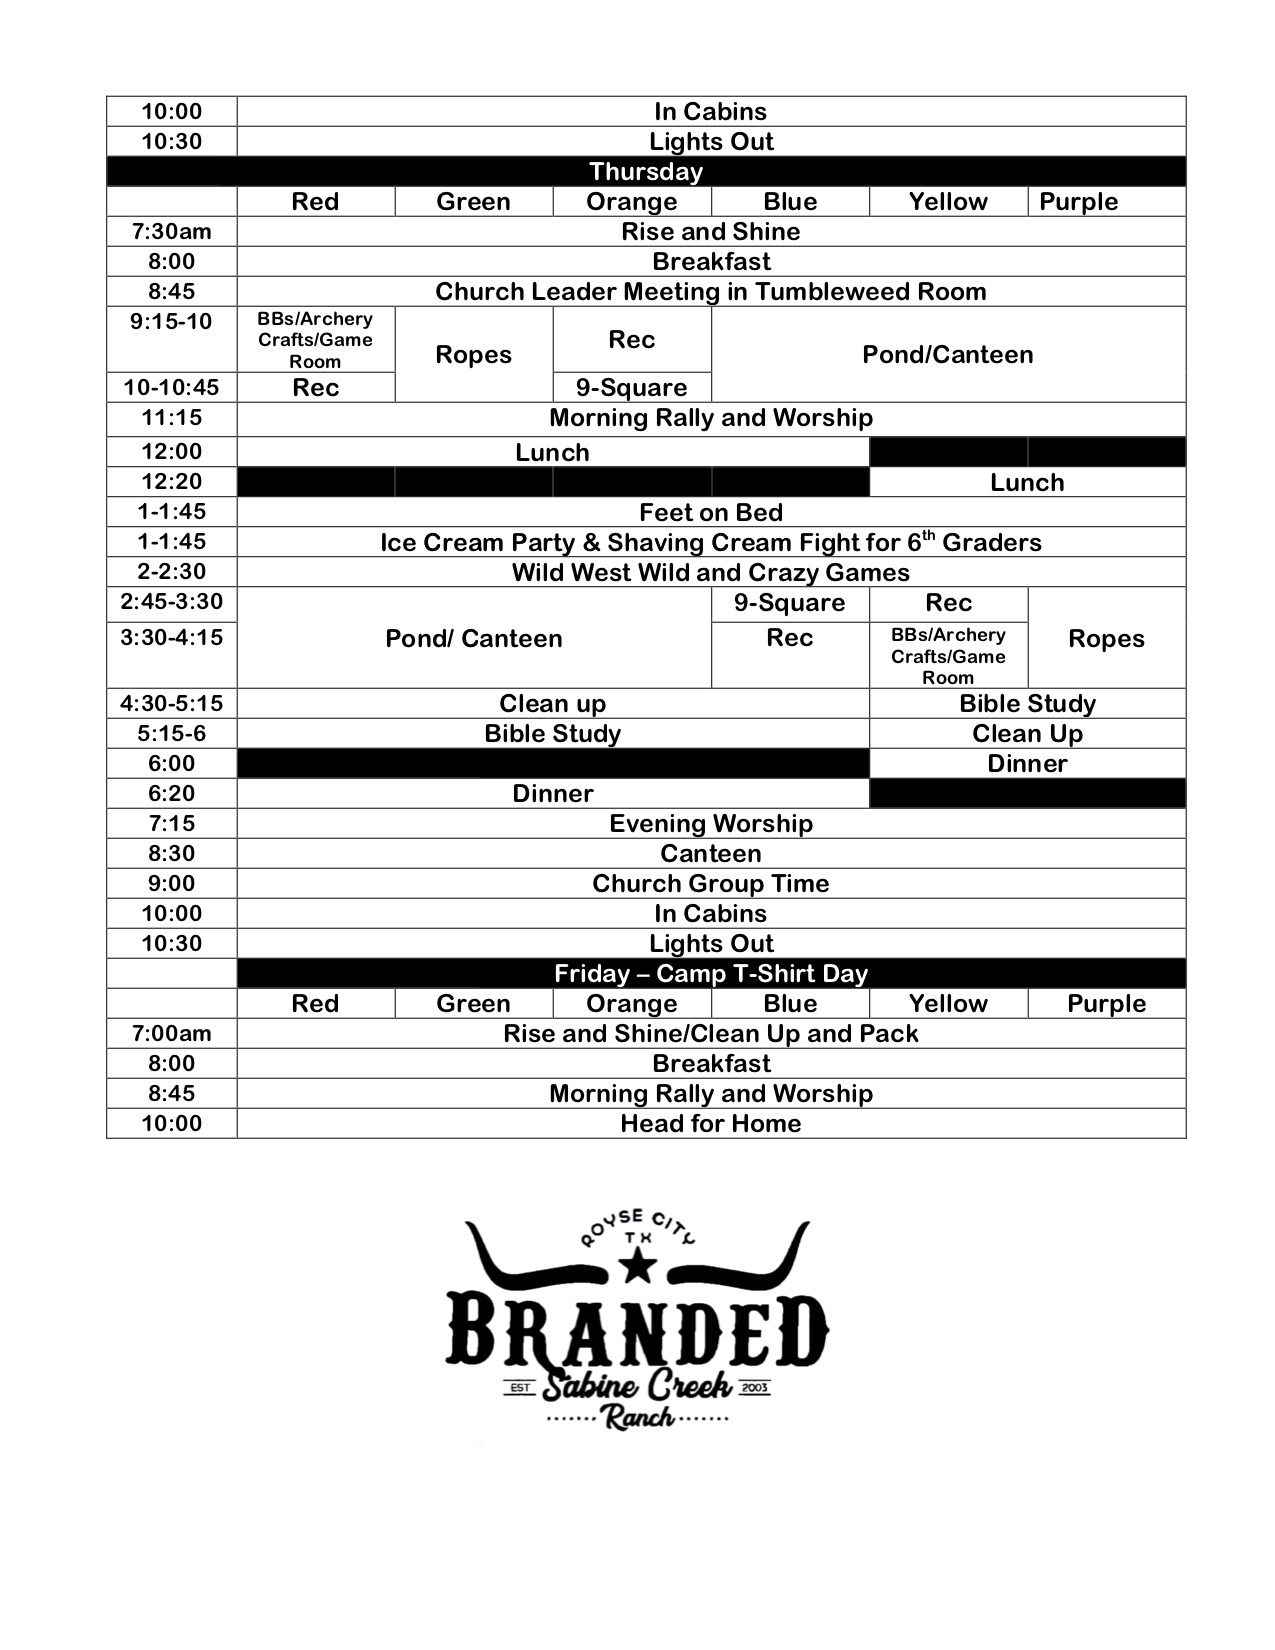 Branded PT 2019 6 color schedule Pg 2.jpg